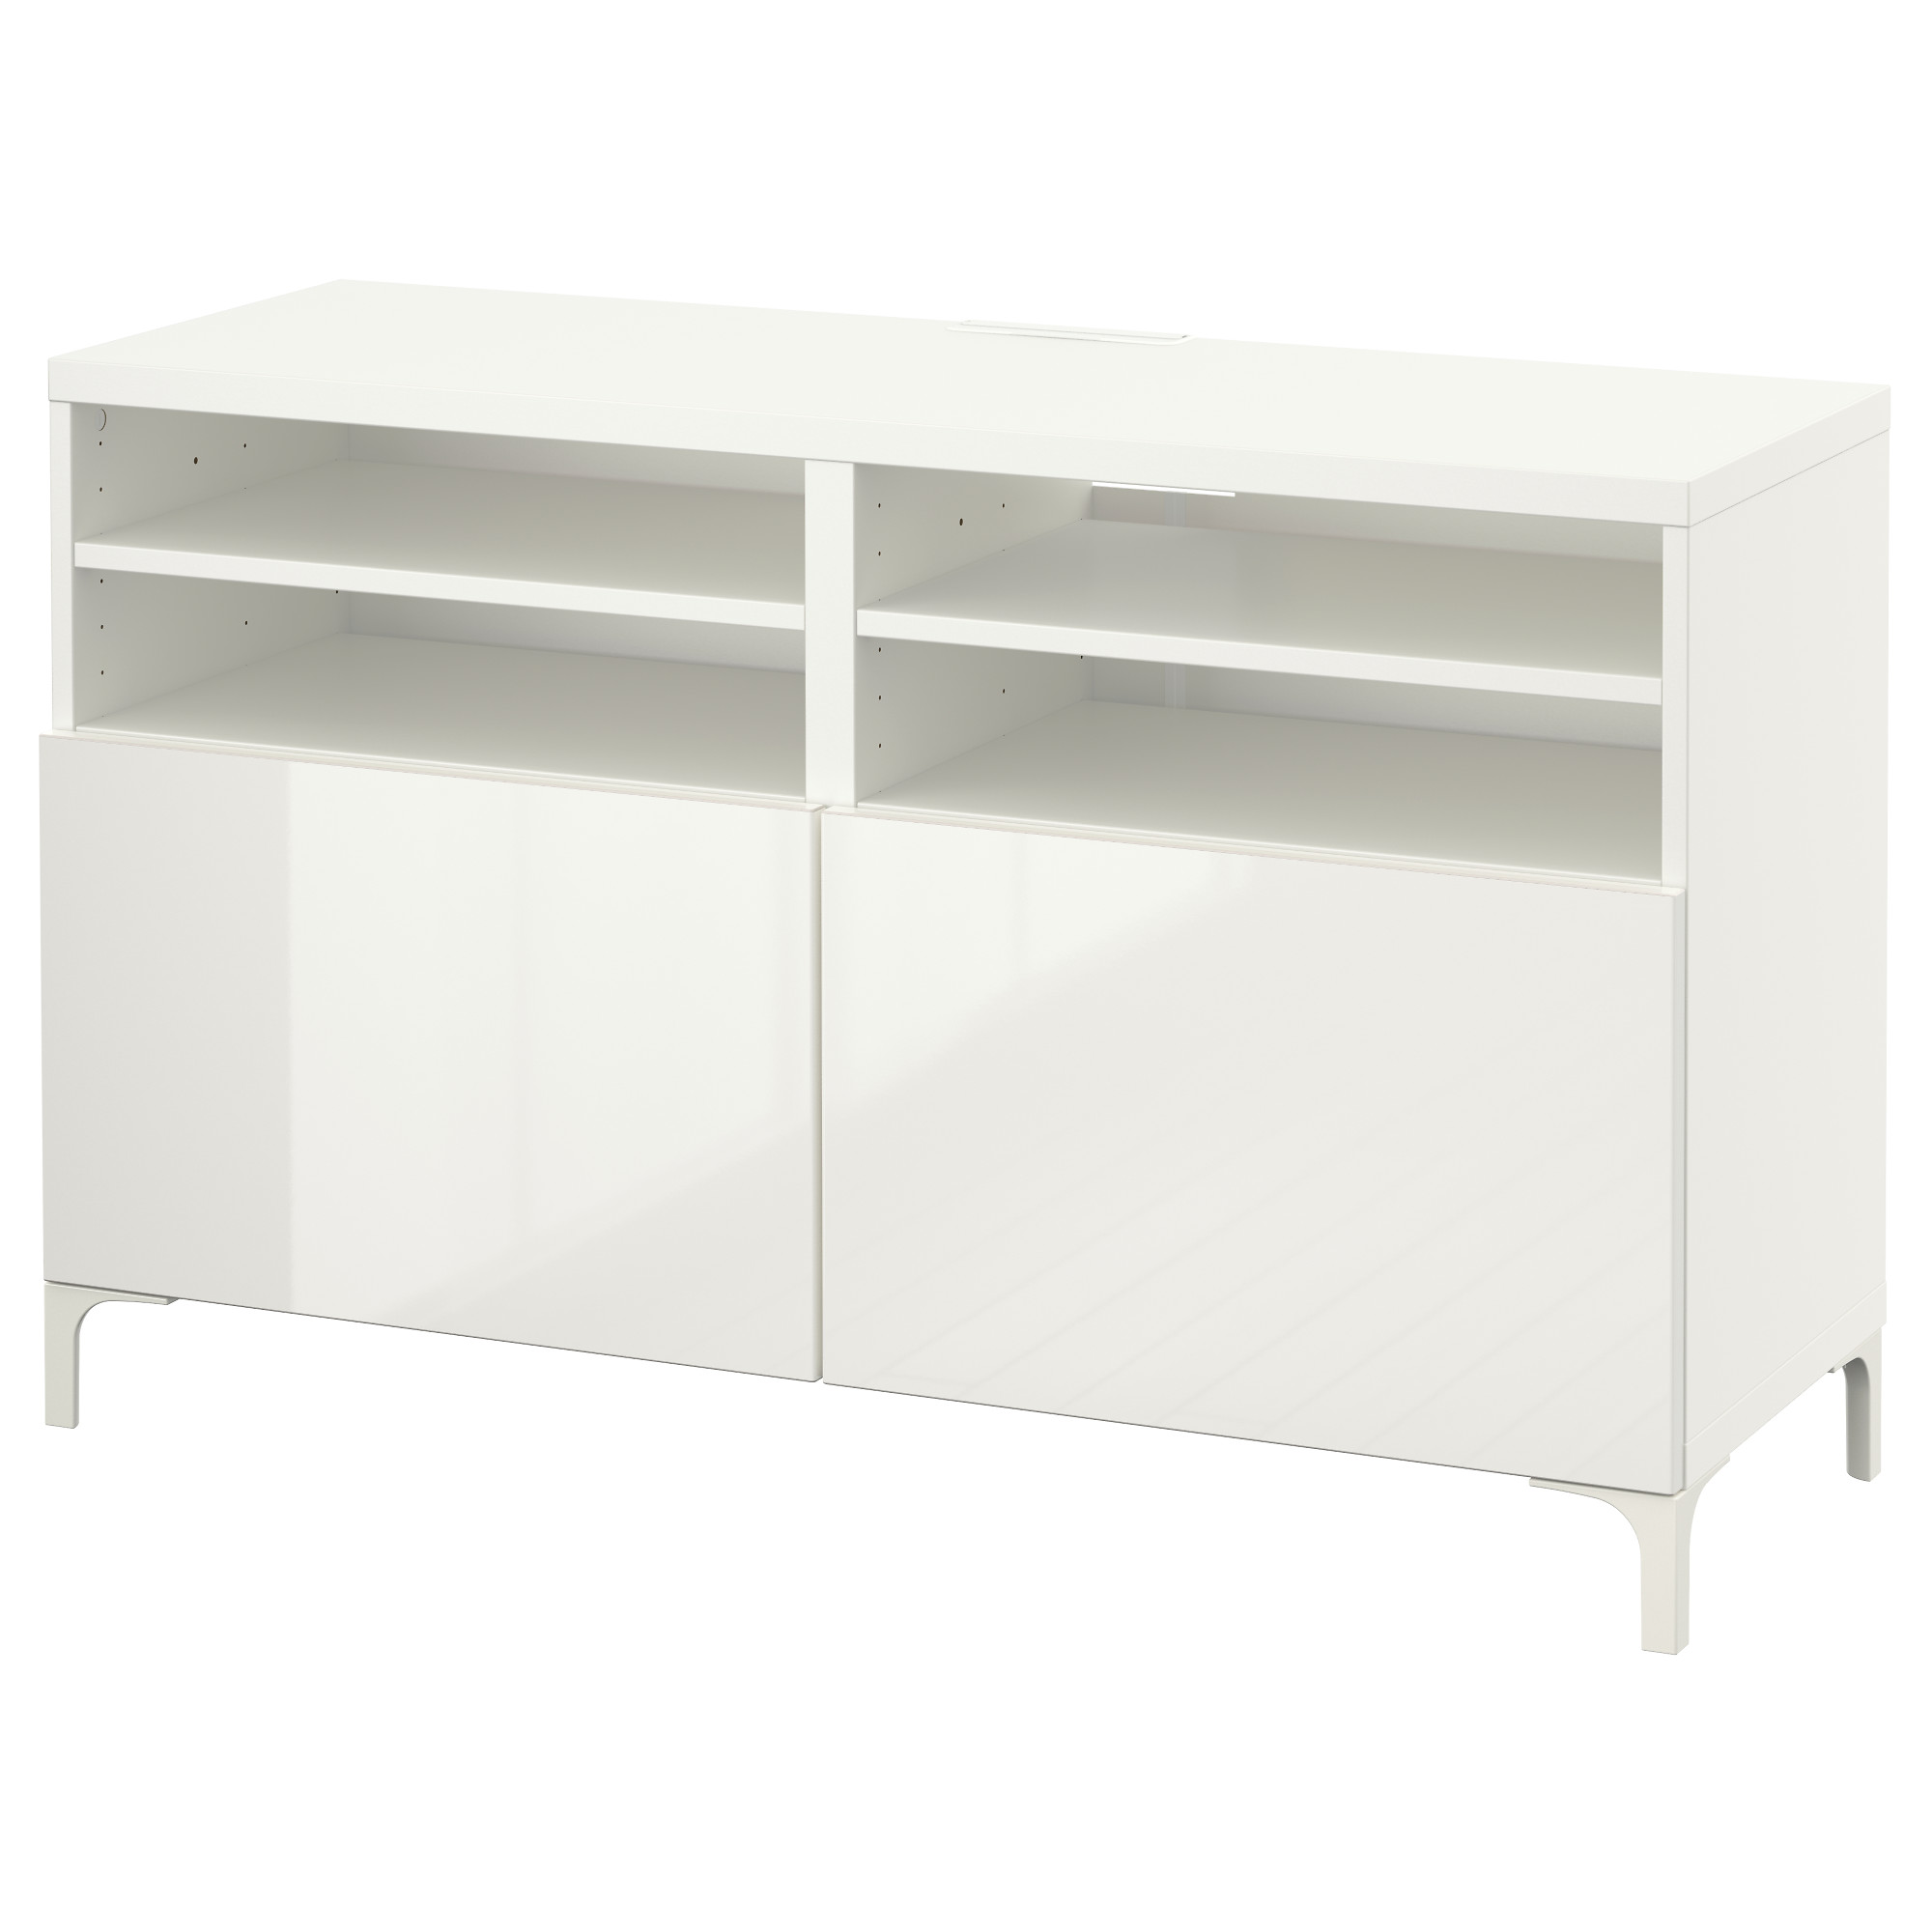 Meuble bas tv blanc ikea solutions pour la d coration for Meuble blanc ikea